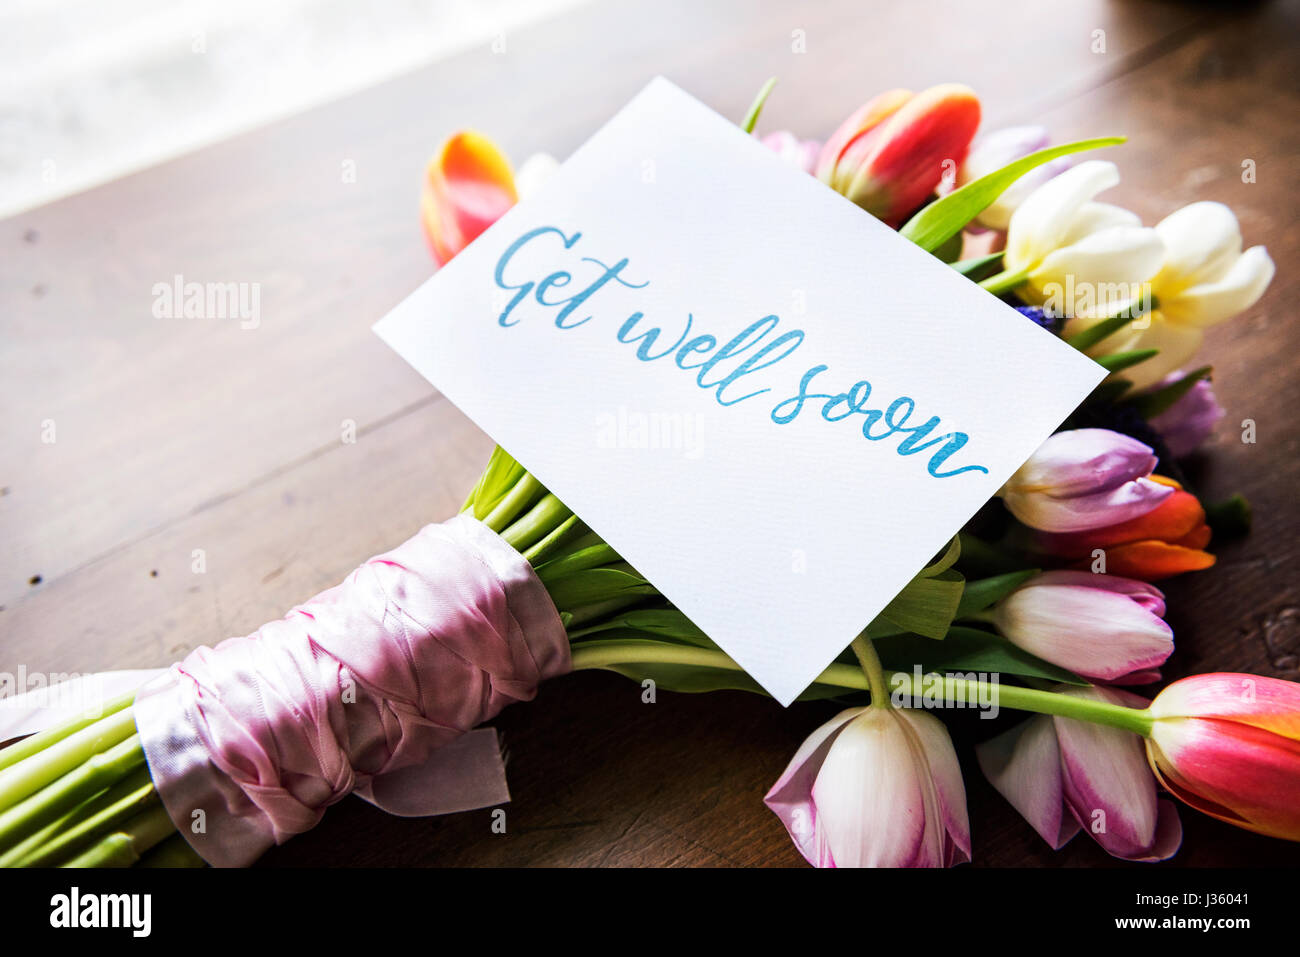 Get well soon card flowers stock photos get well soon card tulips flowers bouquet with get well soon wishing card stock image dhlflorist Images